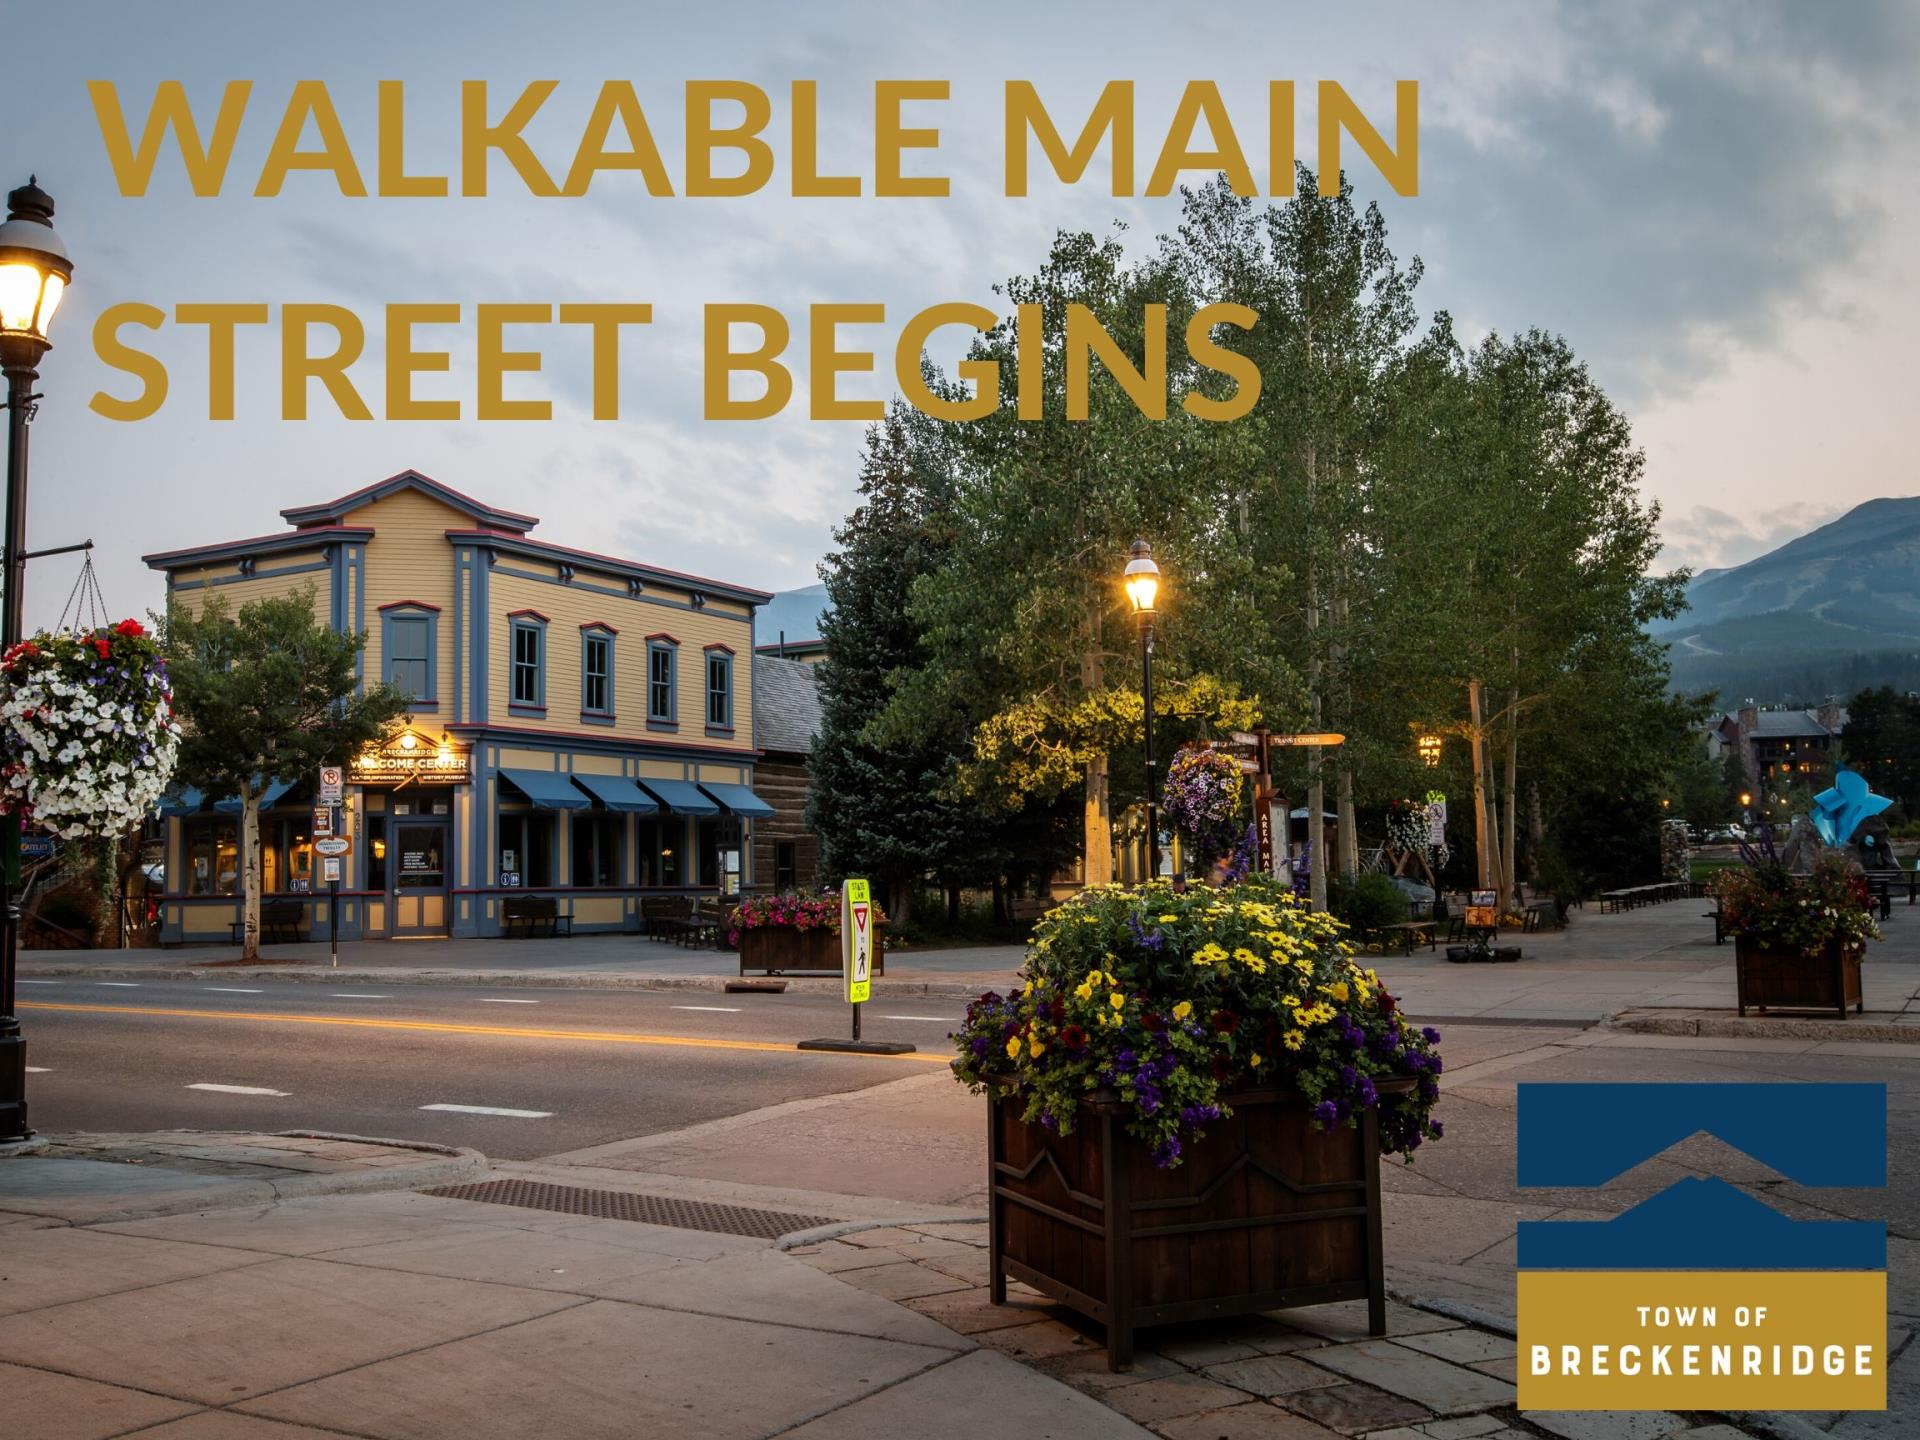 WALKABLE MAIN STREET BEGINS